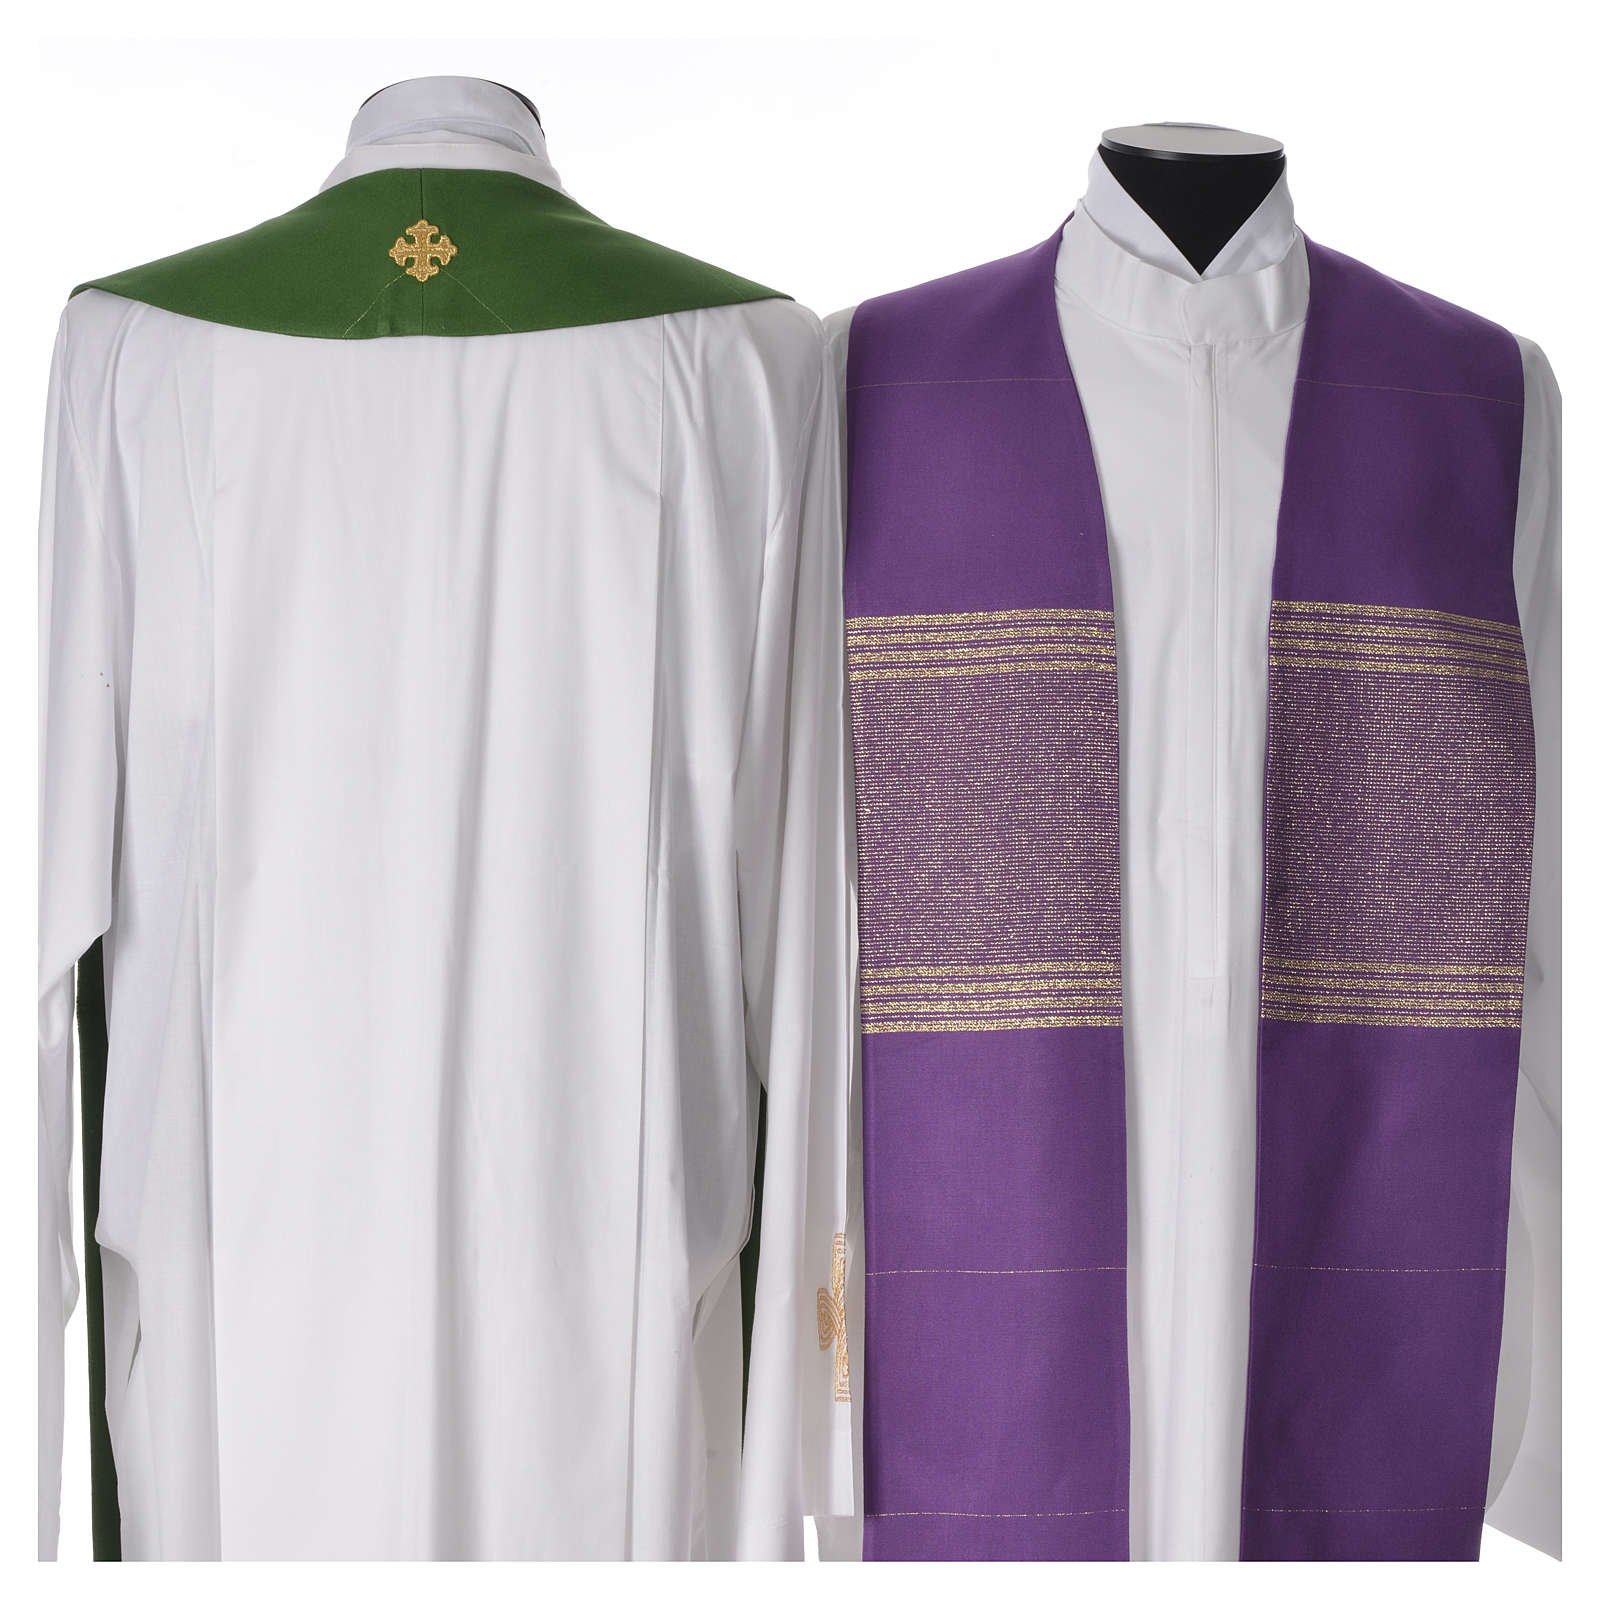 Minister Stole in 90% bamboo and 10% natural viscose with golden cross 4